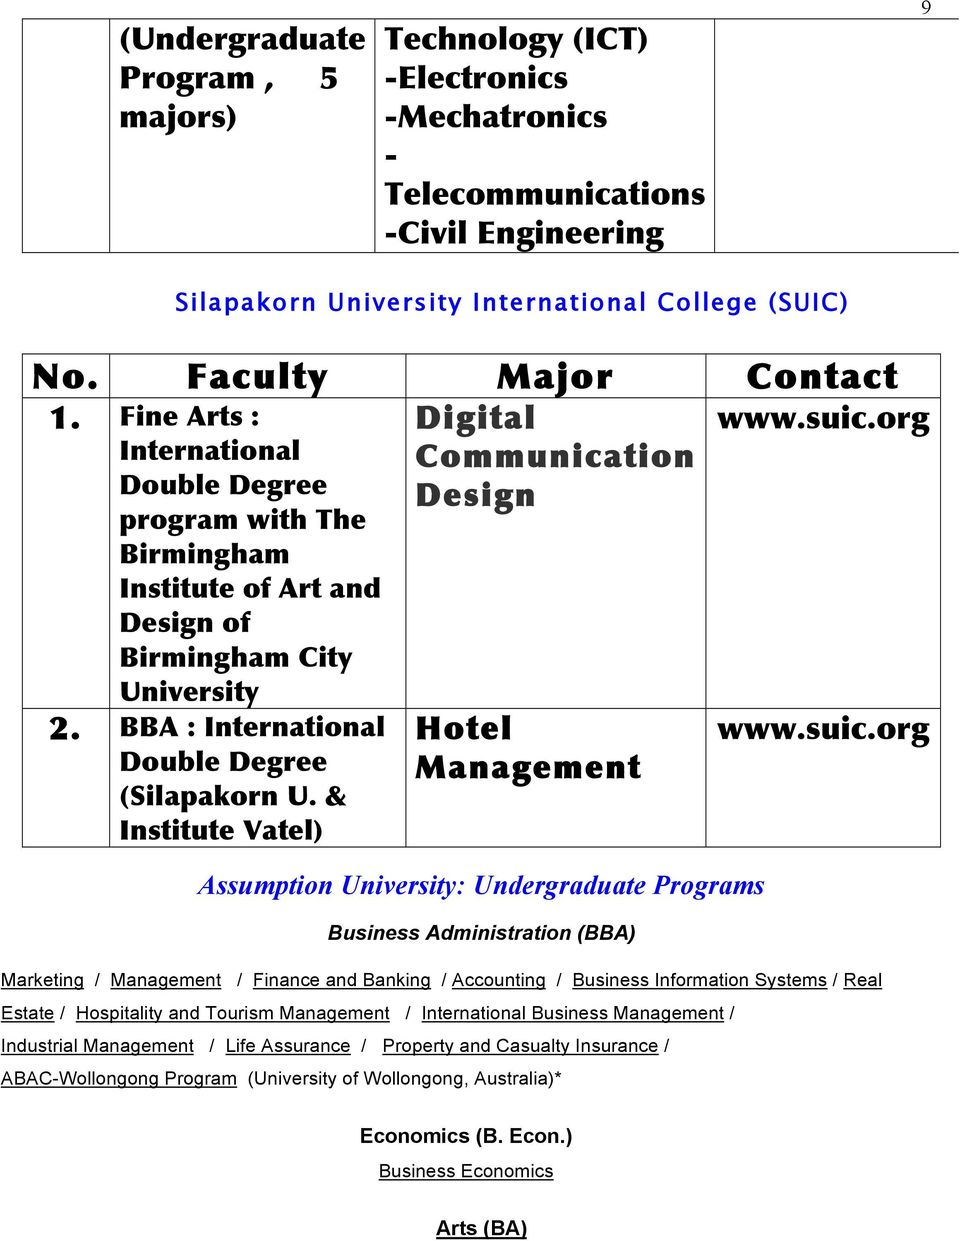 BBA : International Double Degree (Silapakorn U. & Institute Vatel) Hotel Management Assumption University: Undergraduate s Business Administration (BBA) www.suic.